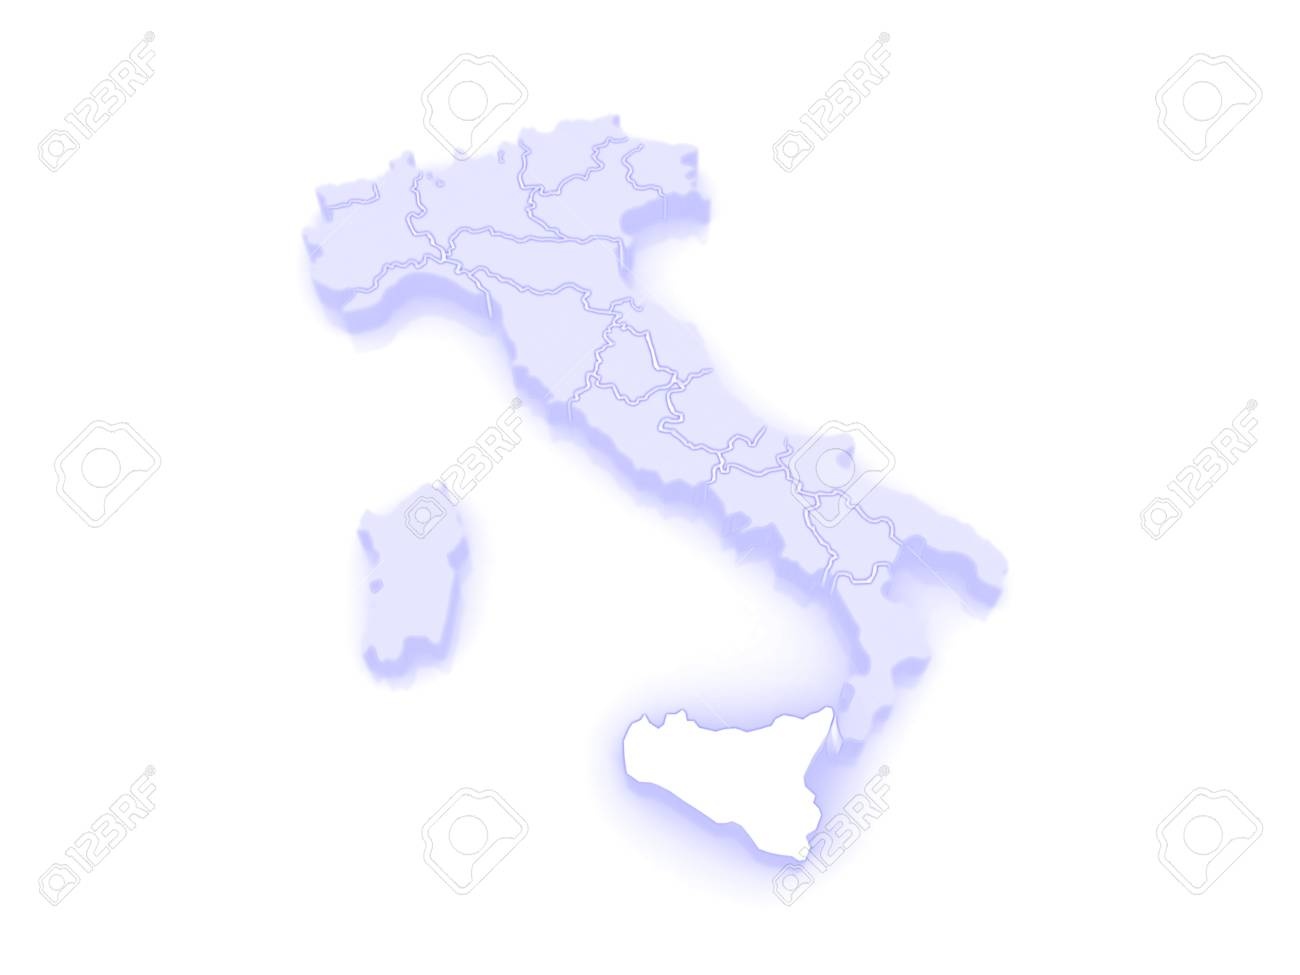 Map of Sicily. Italy. 3d